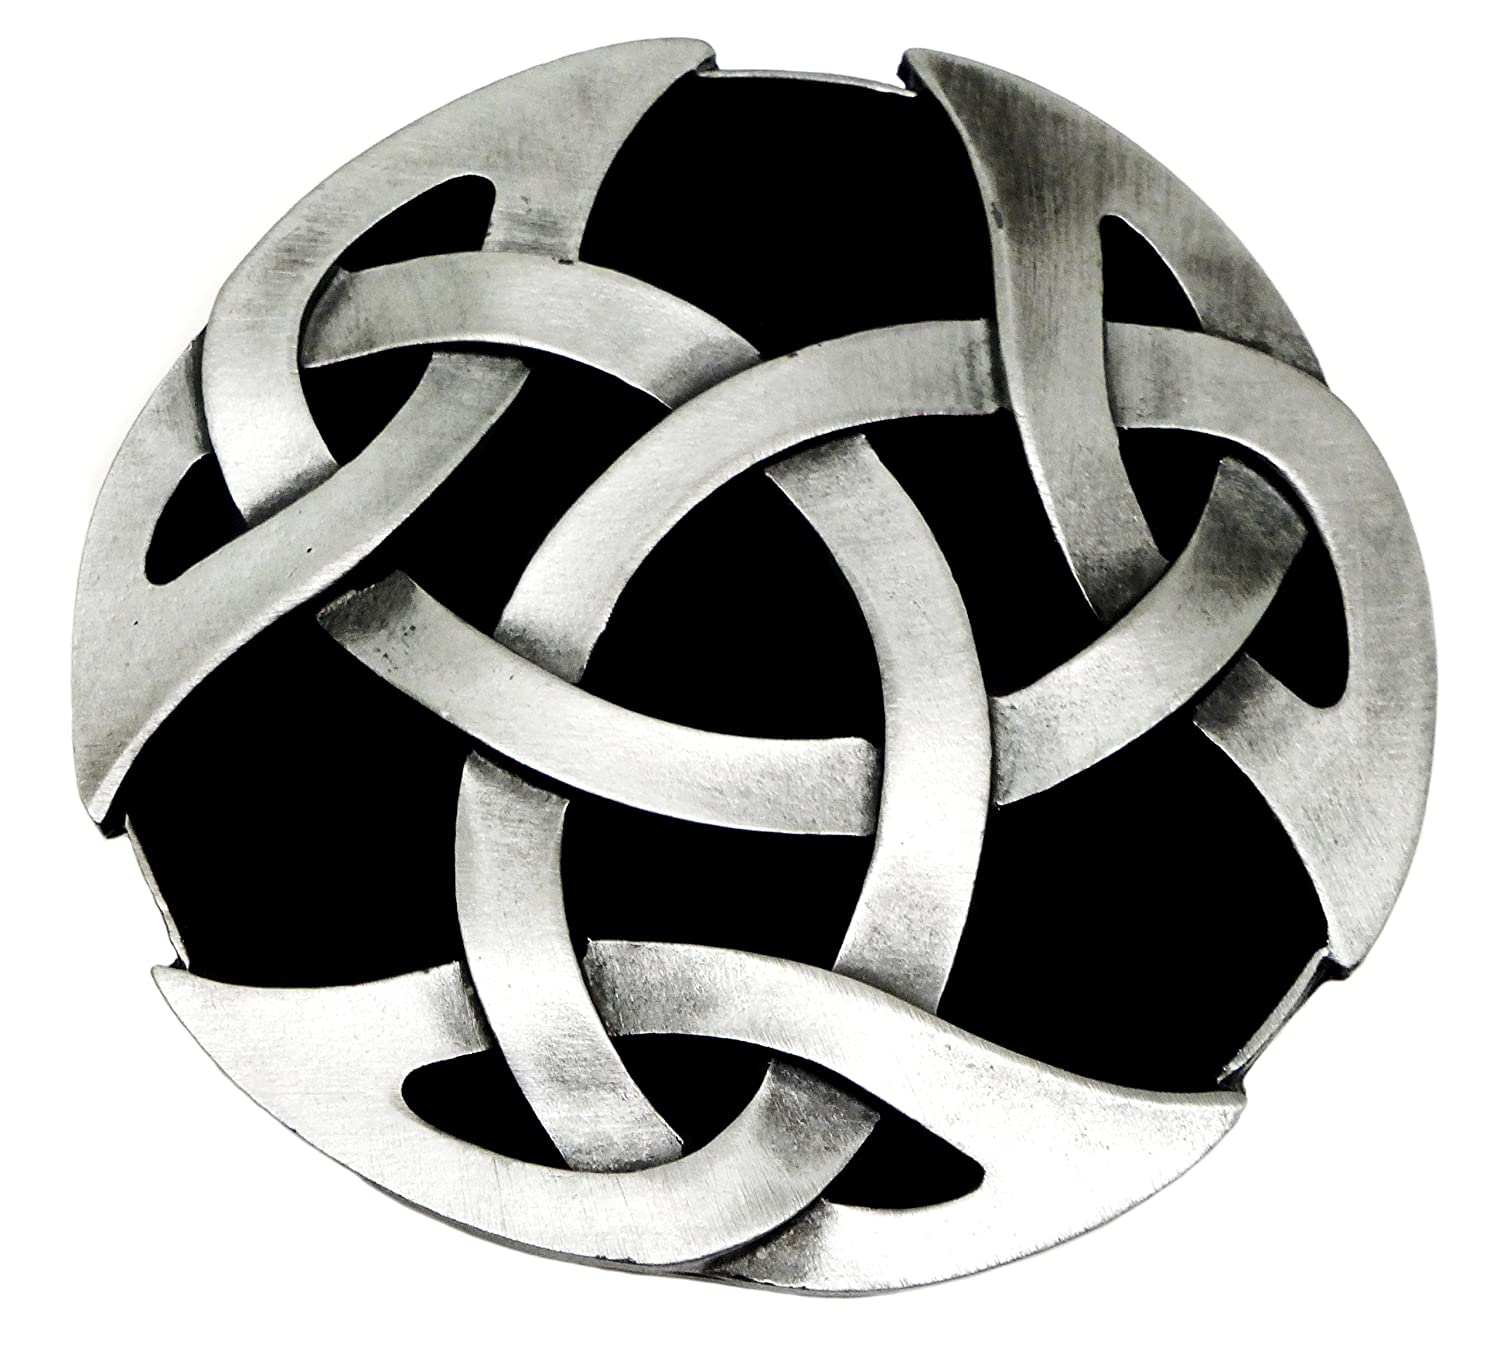 Celtic Knot Belt Buckle 3D Circular Design Authentic Bulldog Buckle Co Branded Product